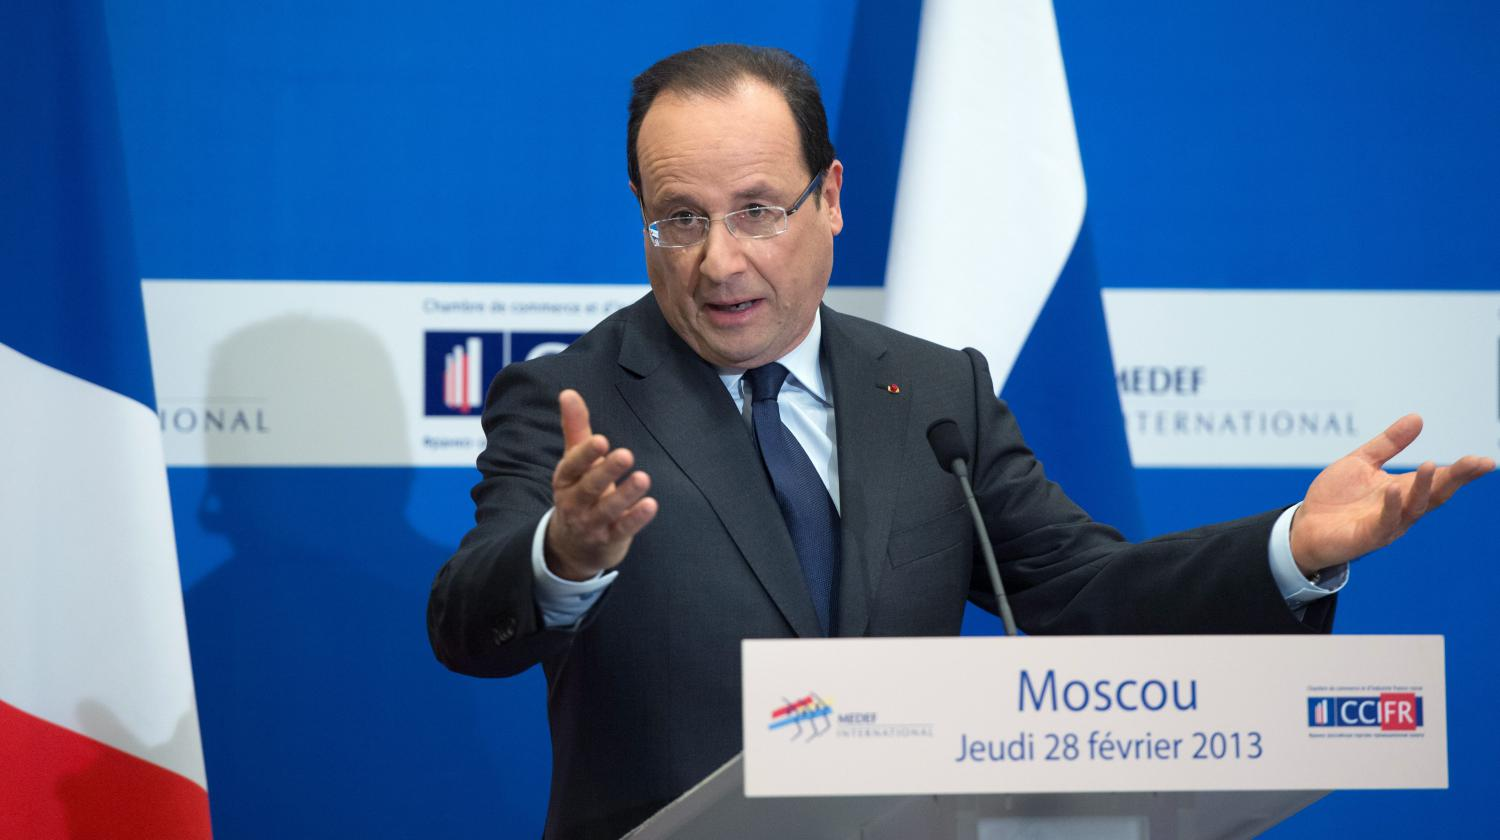 Video en russie hollande fait une allusion depardieu for Chambre de commerce franco russe